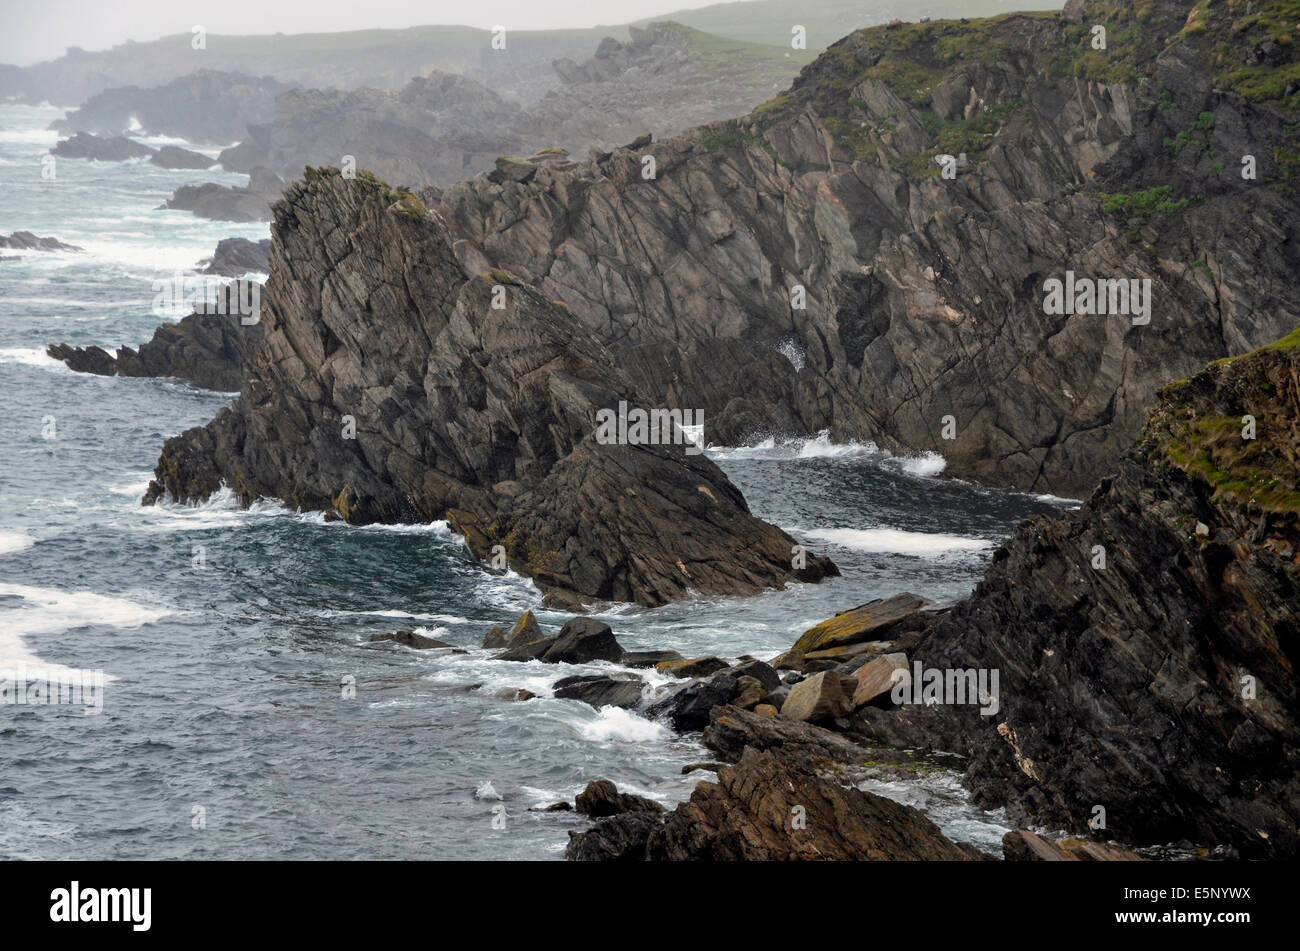 Rugged cliffs jutting into the Atlantic Ocean at Ashleam Bay on the south coast of Achill Island, County Mayo, Ireland. - Stock Image